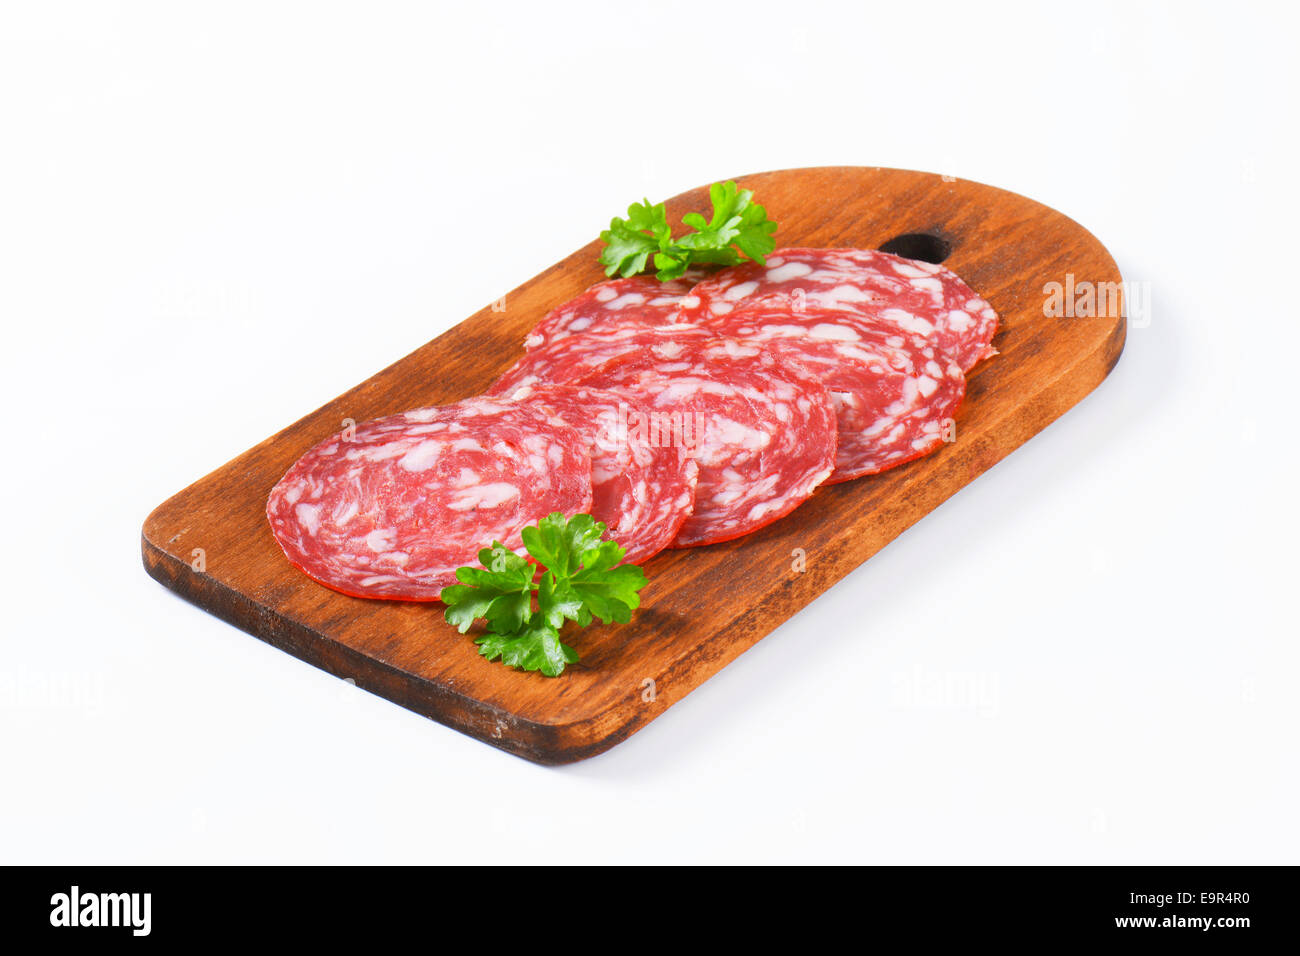 Spanish summer sausage made with Iberico pork - thinly sliced - Stock Image